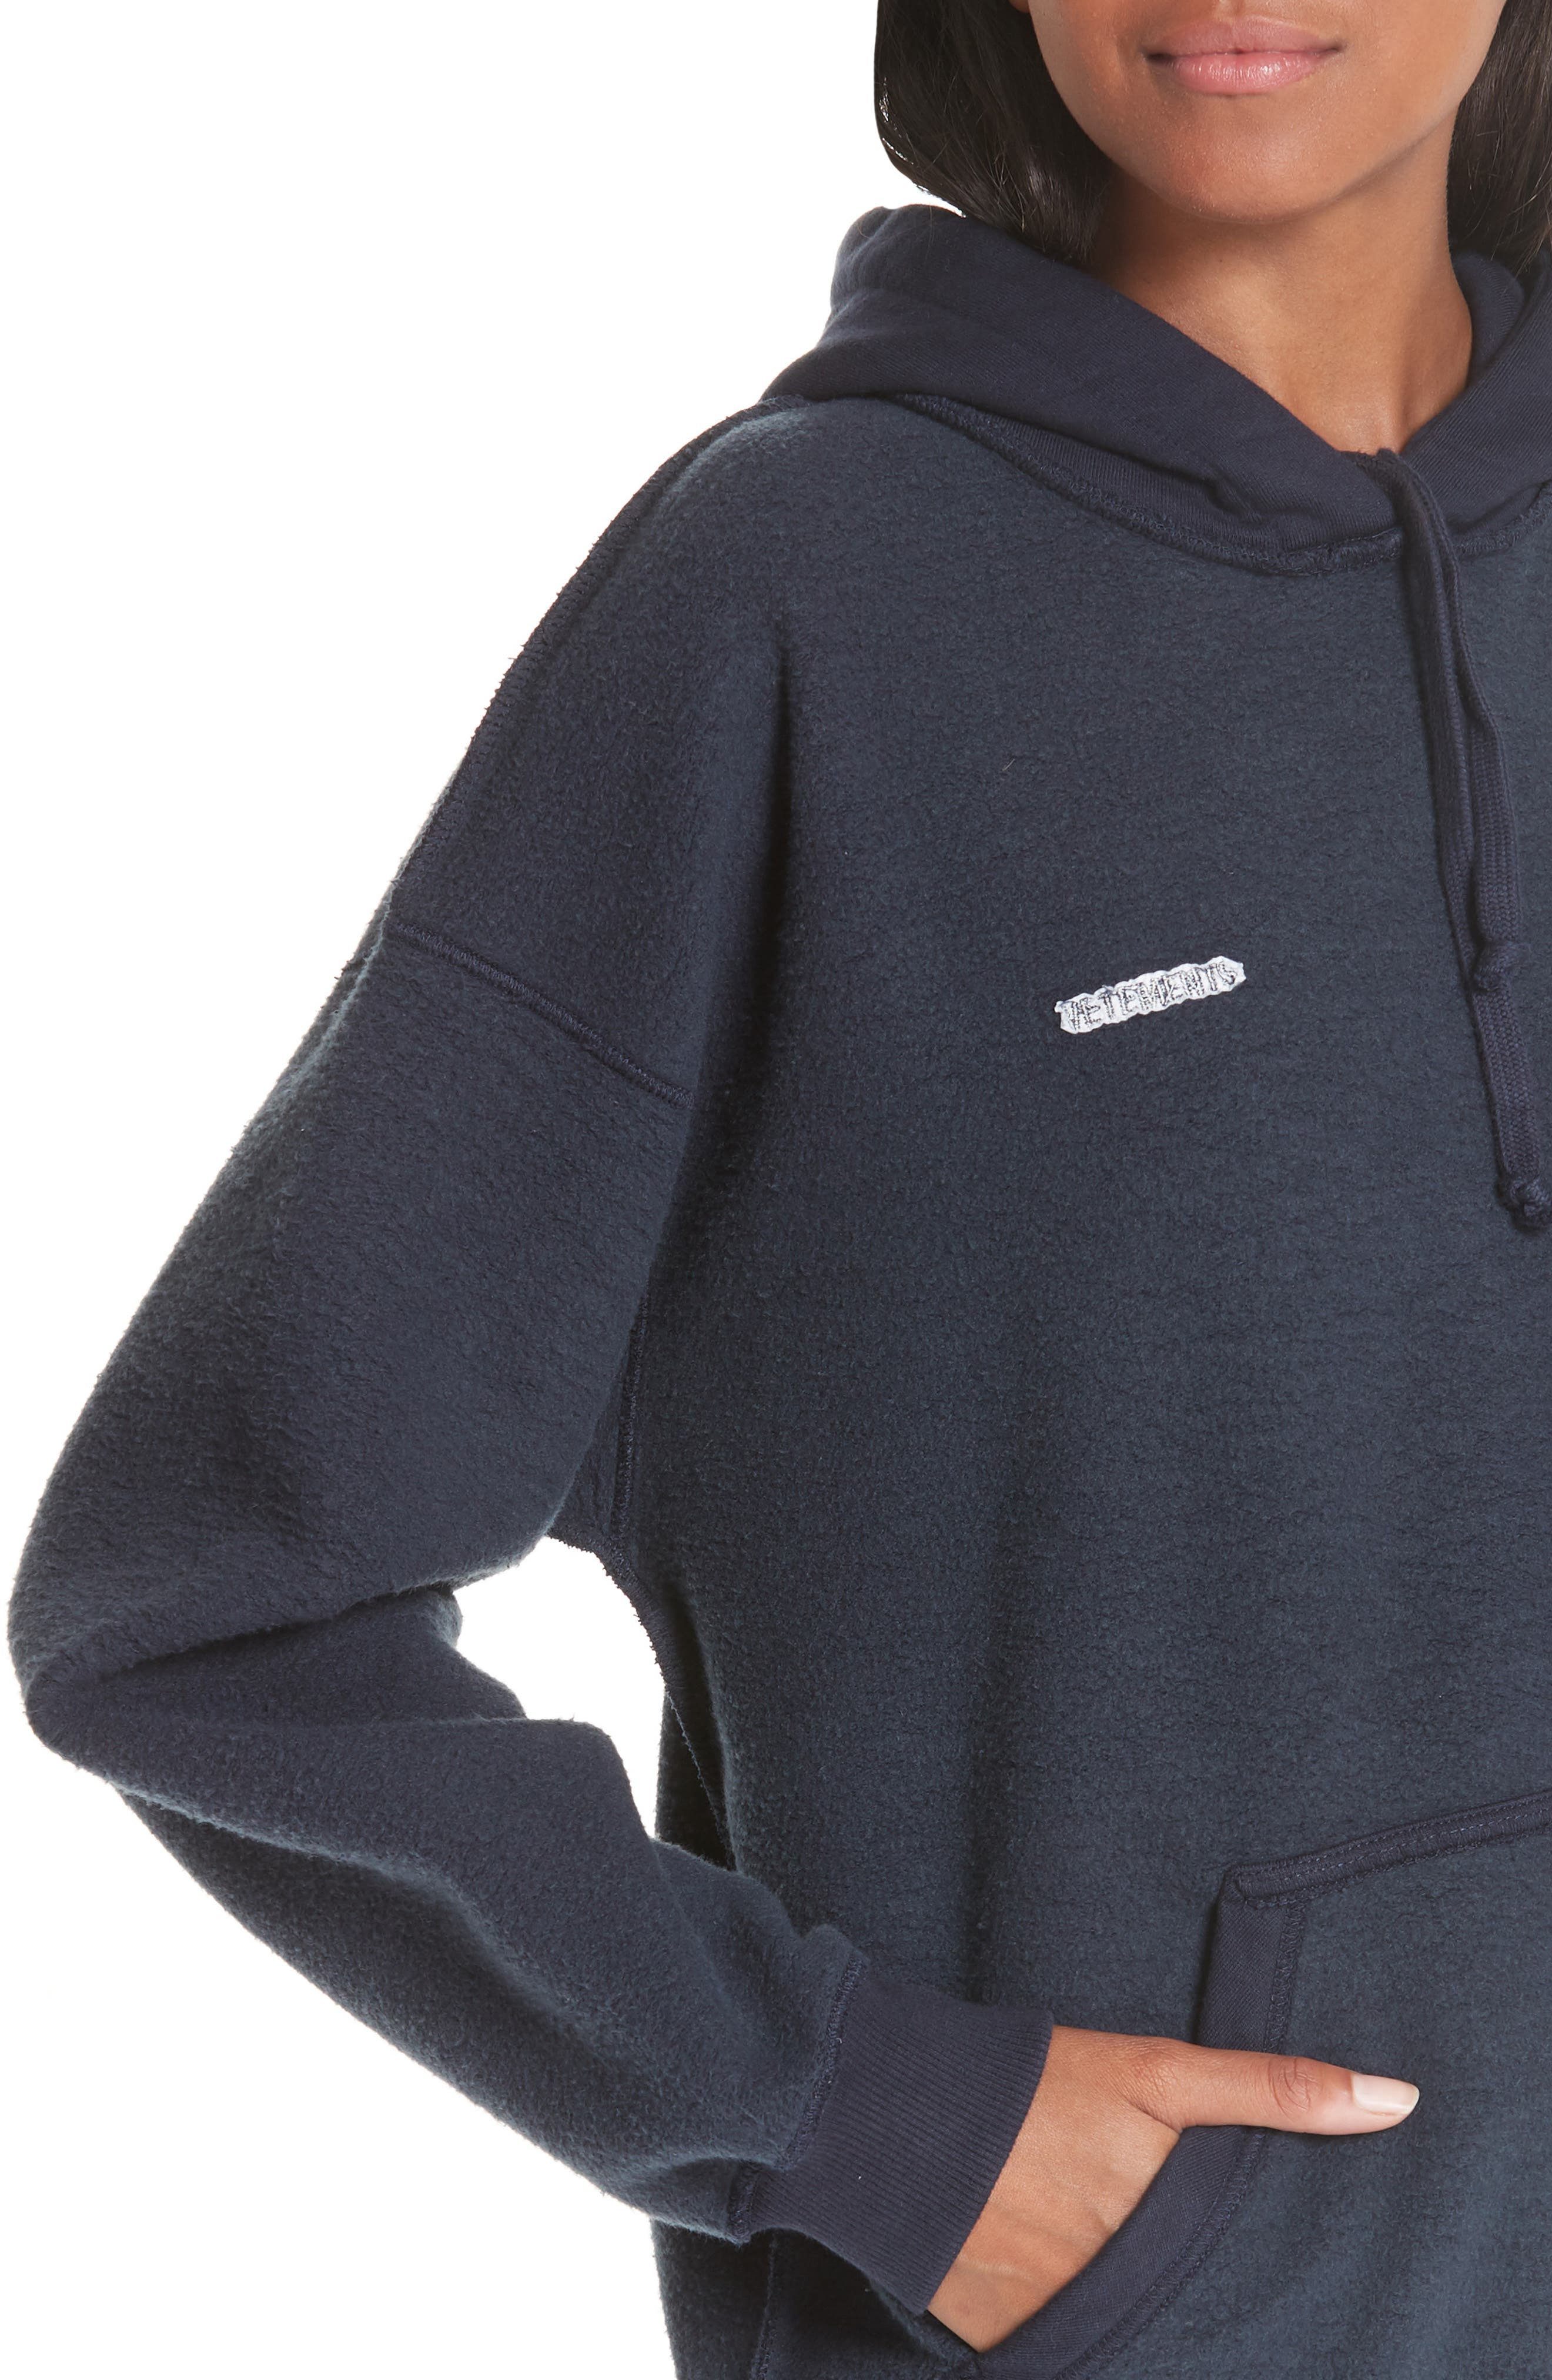 Inside-Out Hoodie,                             Alternate thumbnail 4, color,                             NAVY